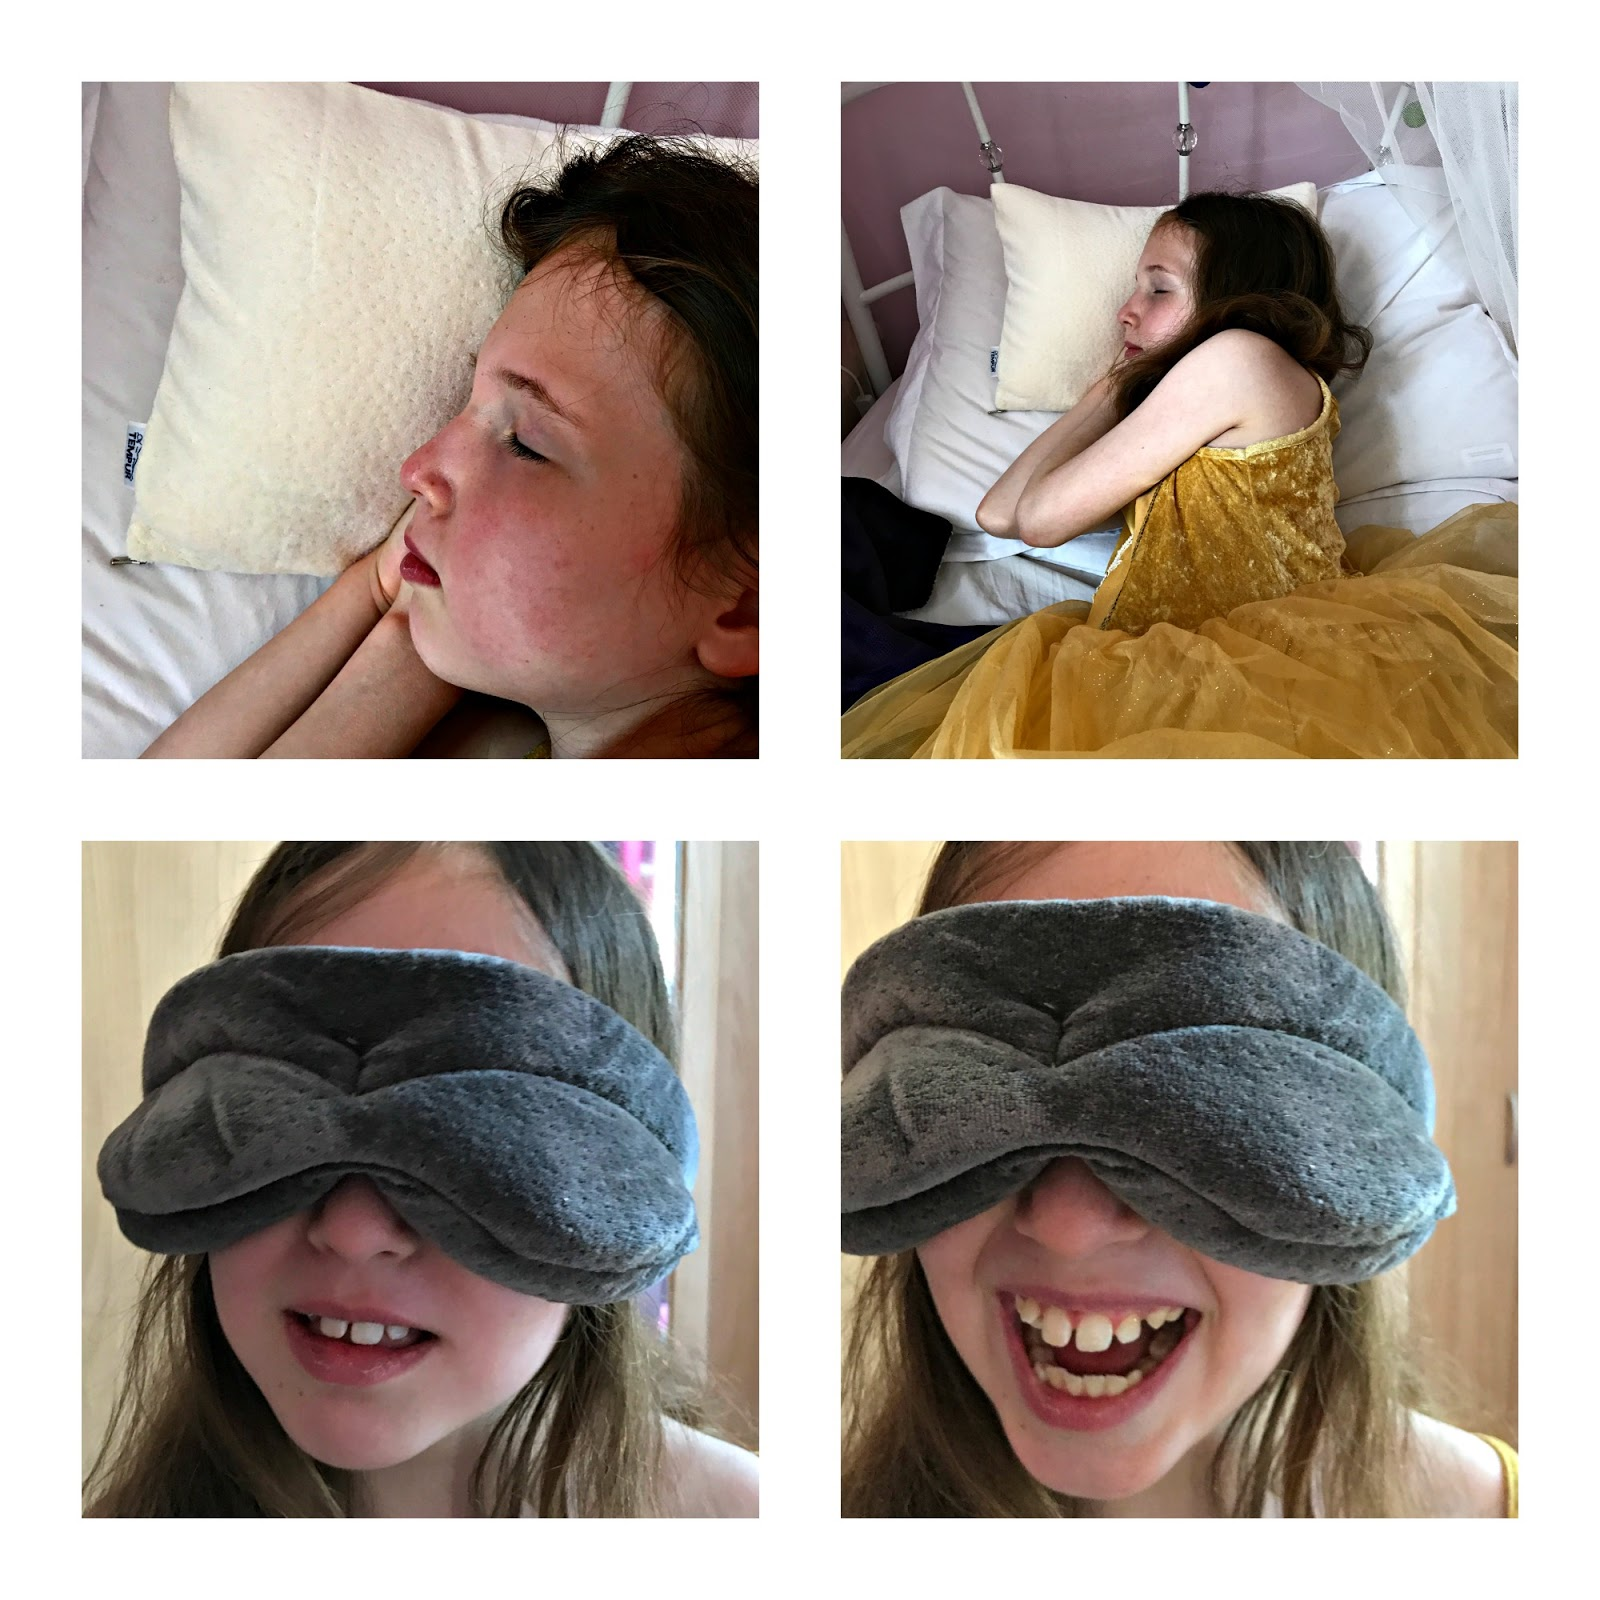 Caitlin testing the Tempur Comfort Travel Pillow & Eye Mask